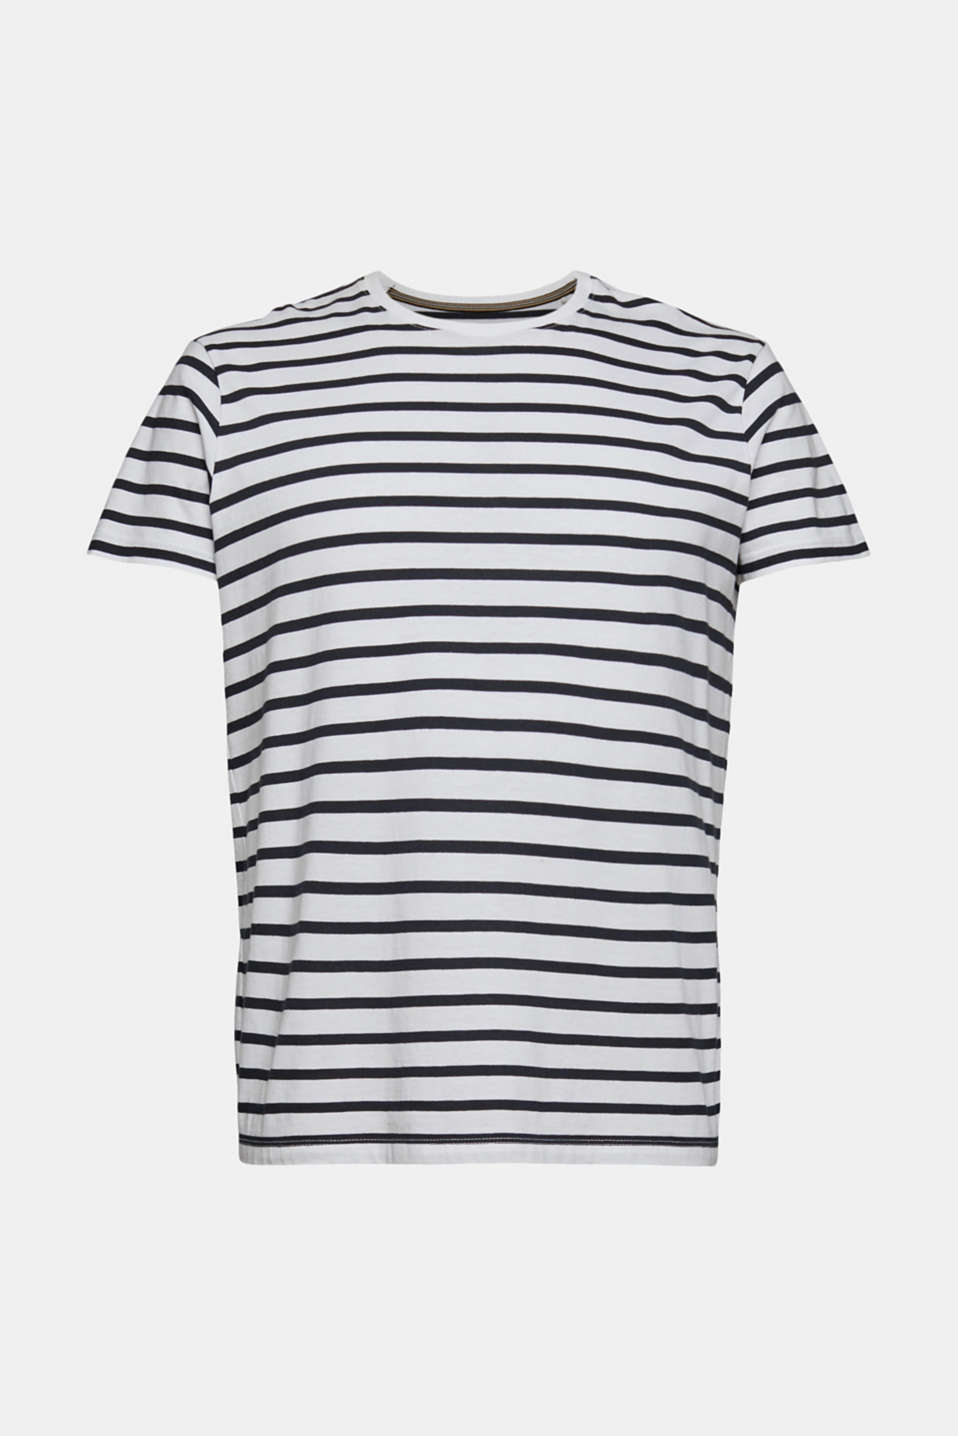 Striped jersey T-shirt in 100% cotton, WHITE 3, detail image number 5